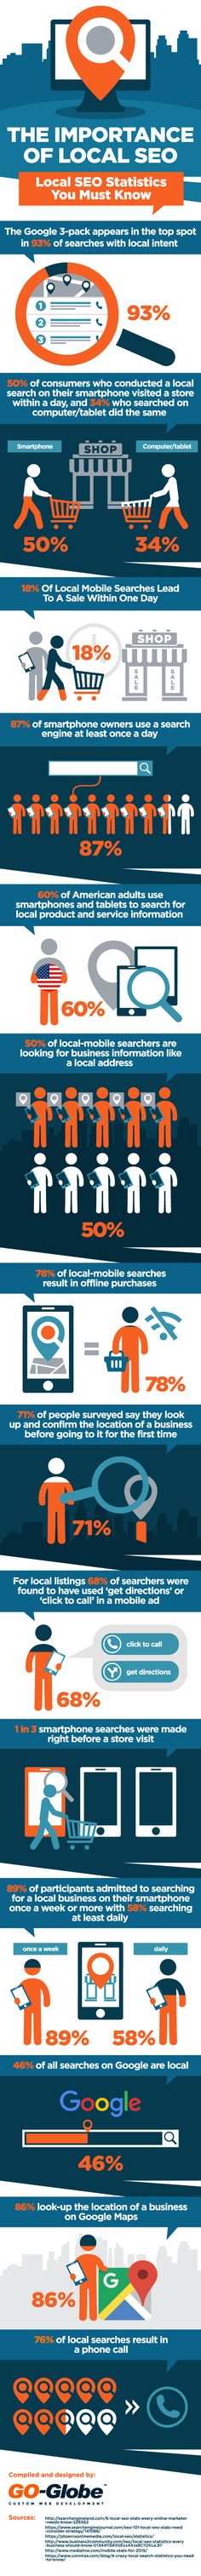 The importance of Local SEO #Infographic #SEO